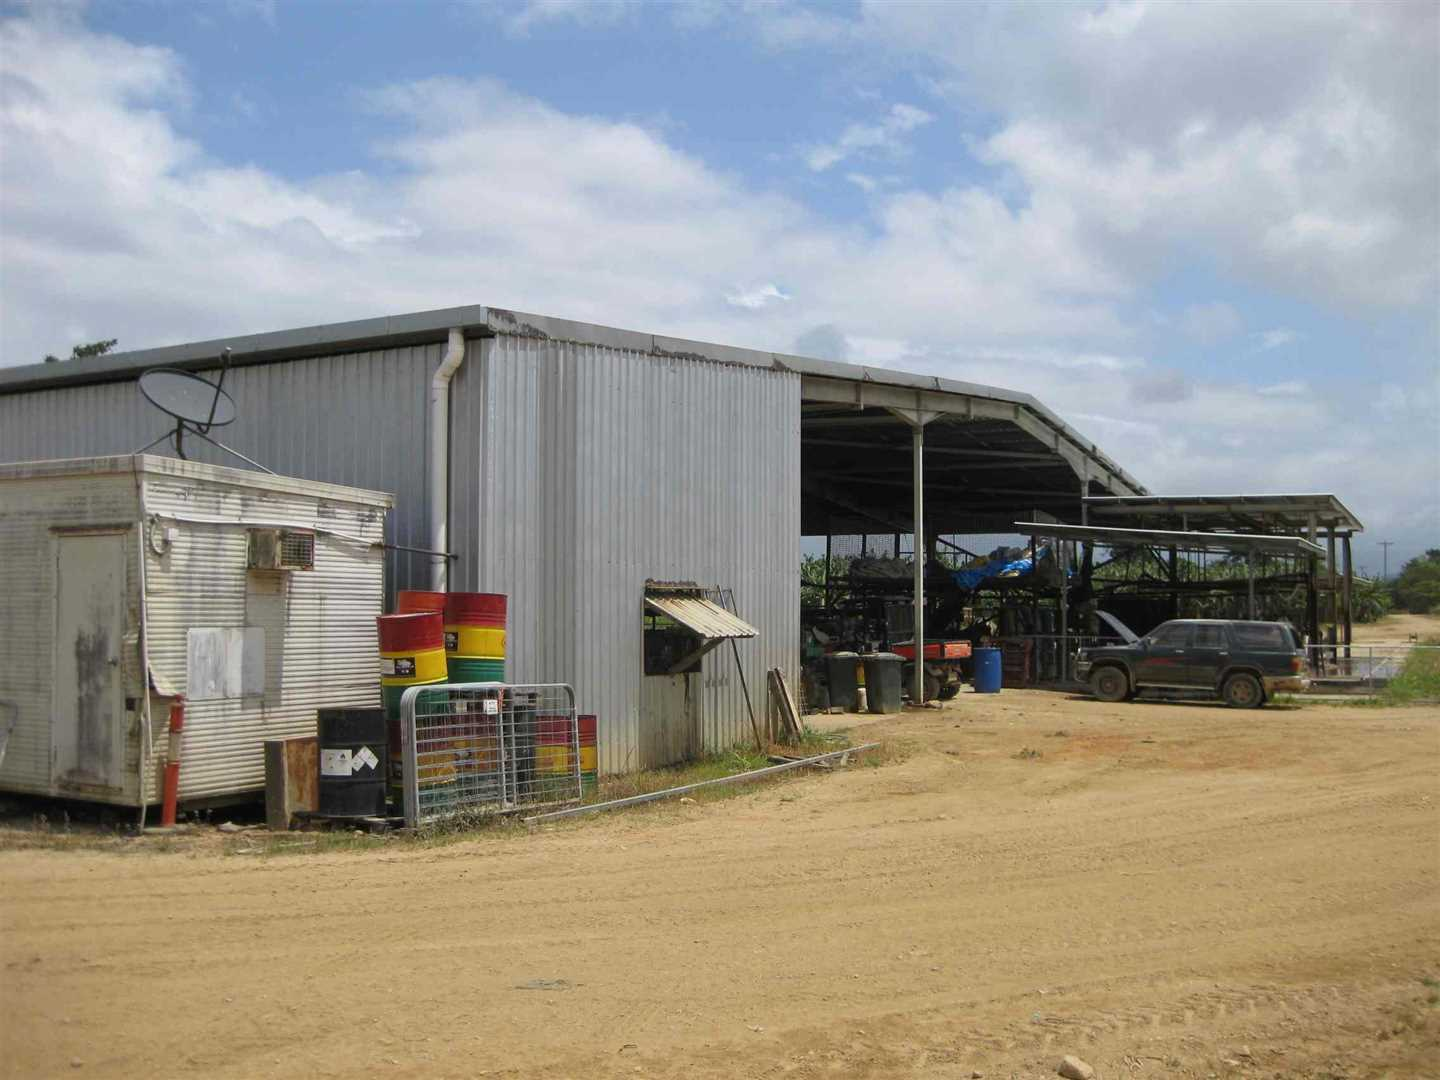 View of part of packing shed, photo 4